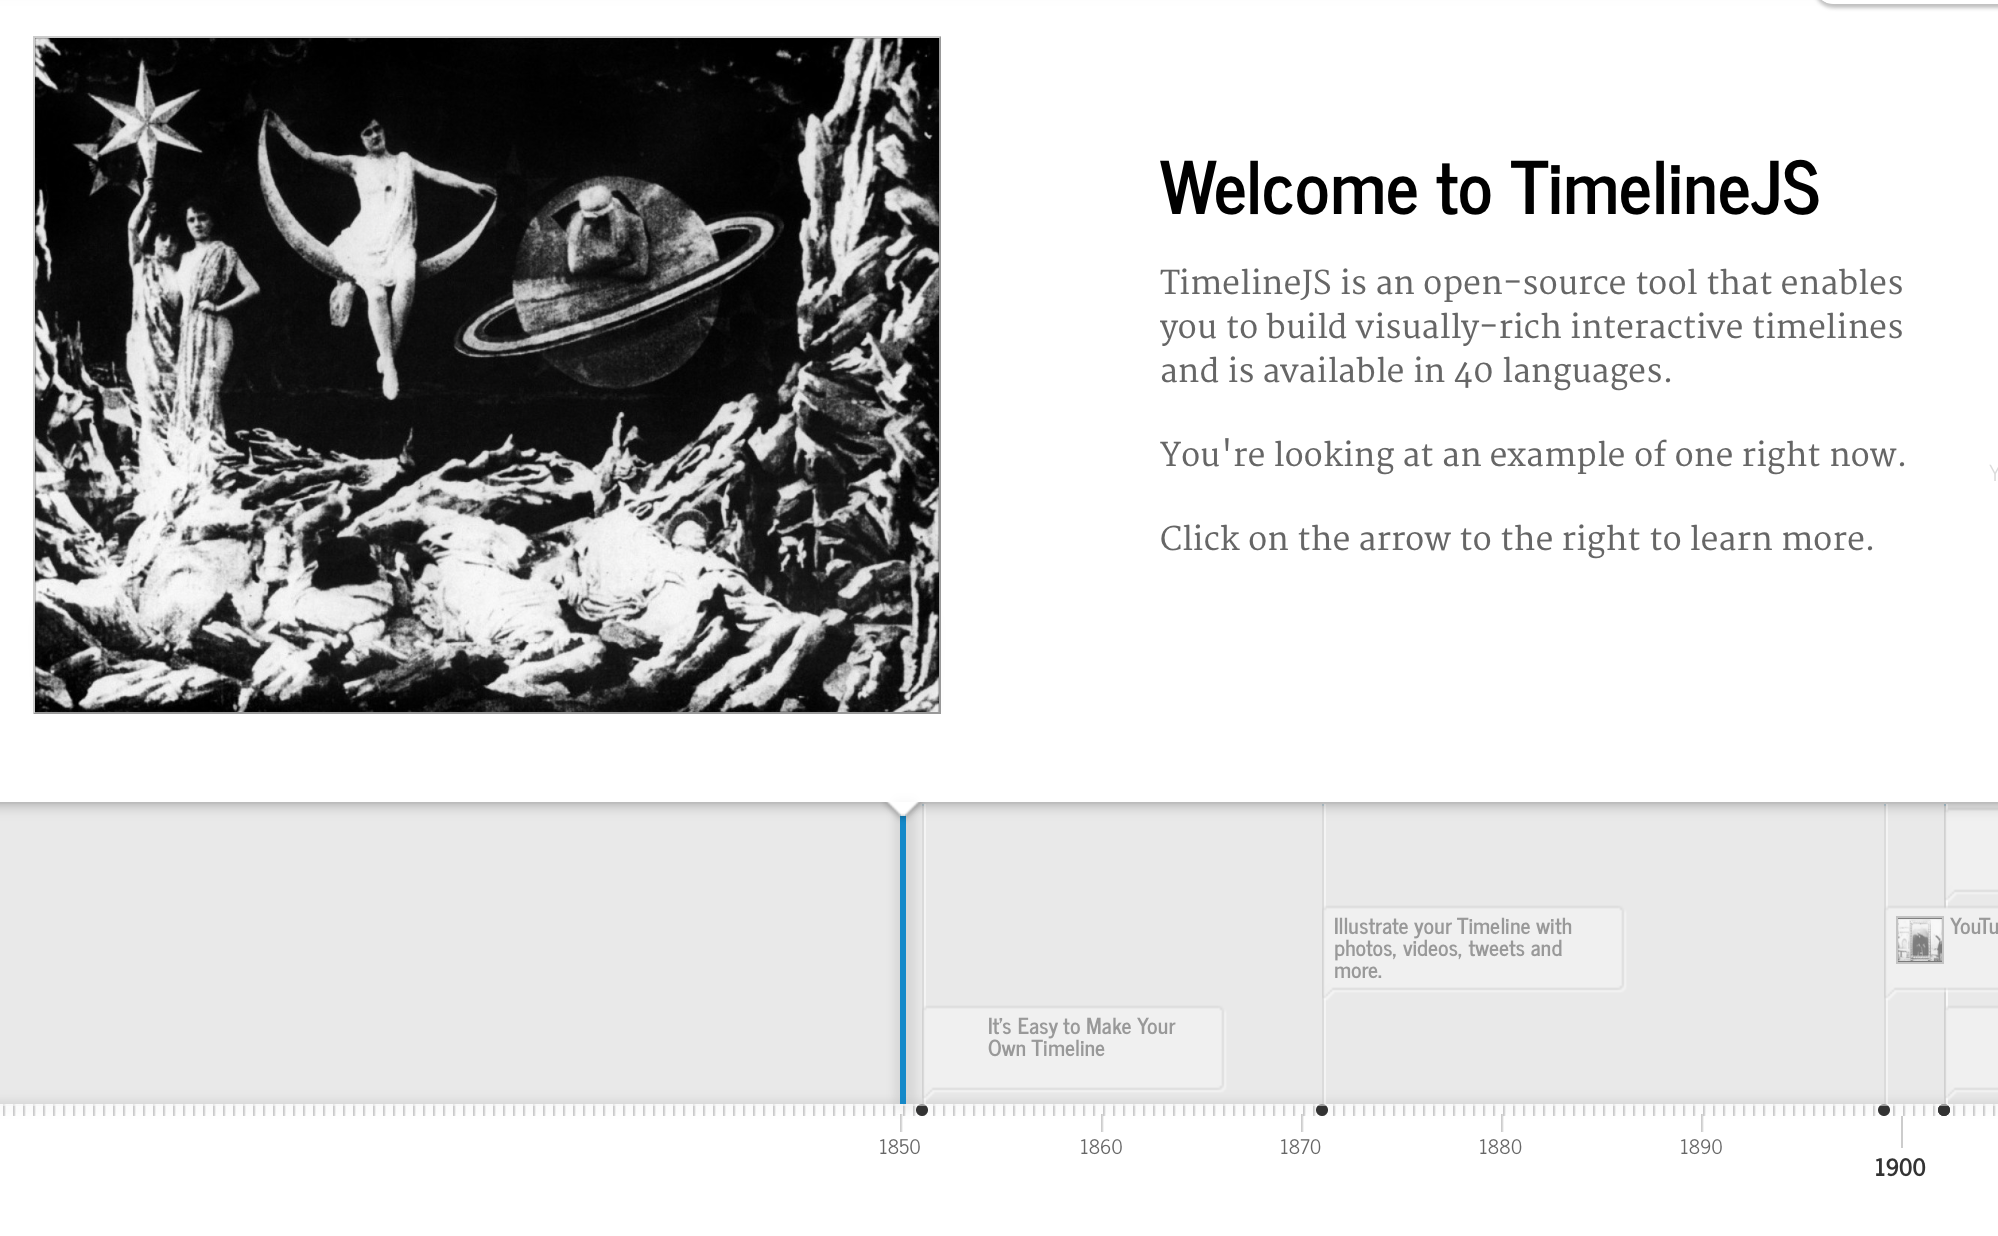 TimelineJS Embeds are now supported in Digication ePortfolios